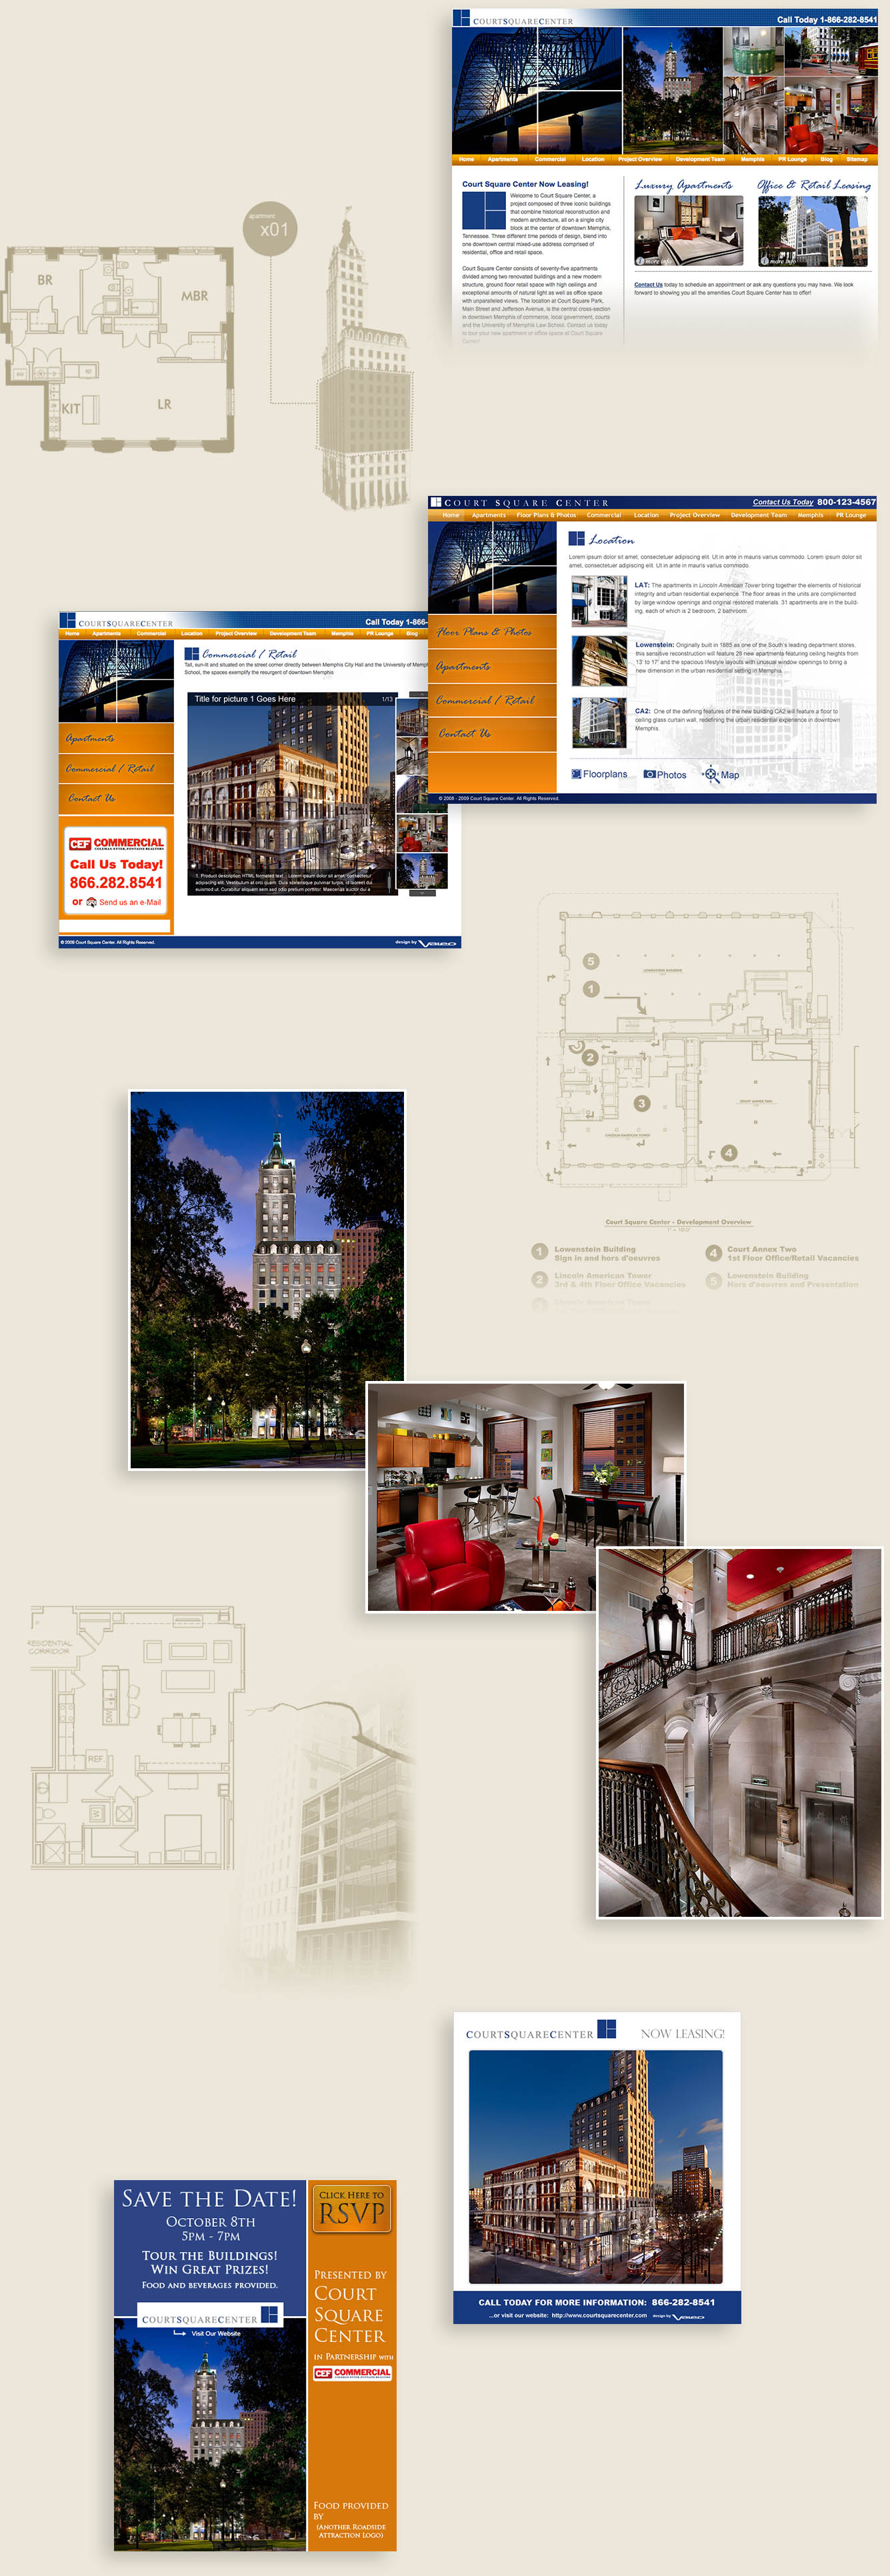 For Court Square Center, we created a website, marketing materials, and more.